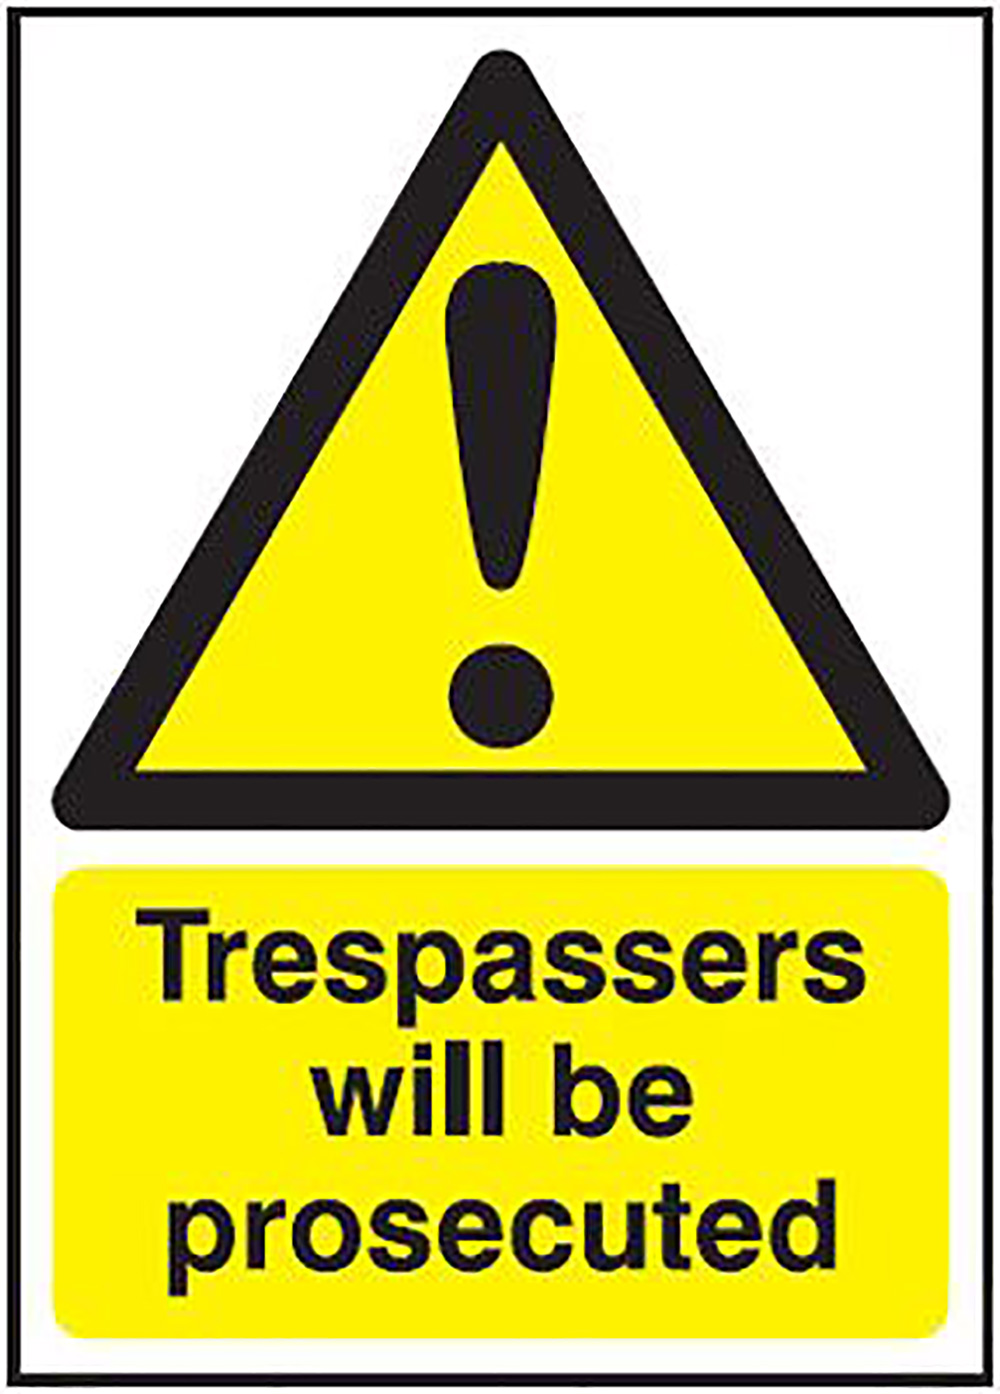 Trespassers Will Be Prosecuted 297x210mm 1.2mm Rigid Plastic Safety Sign